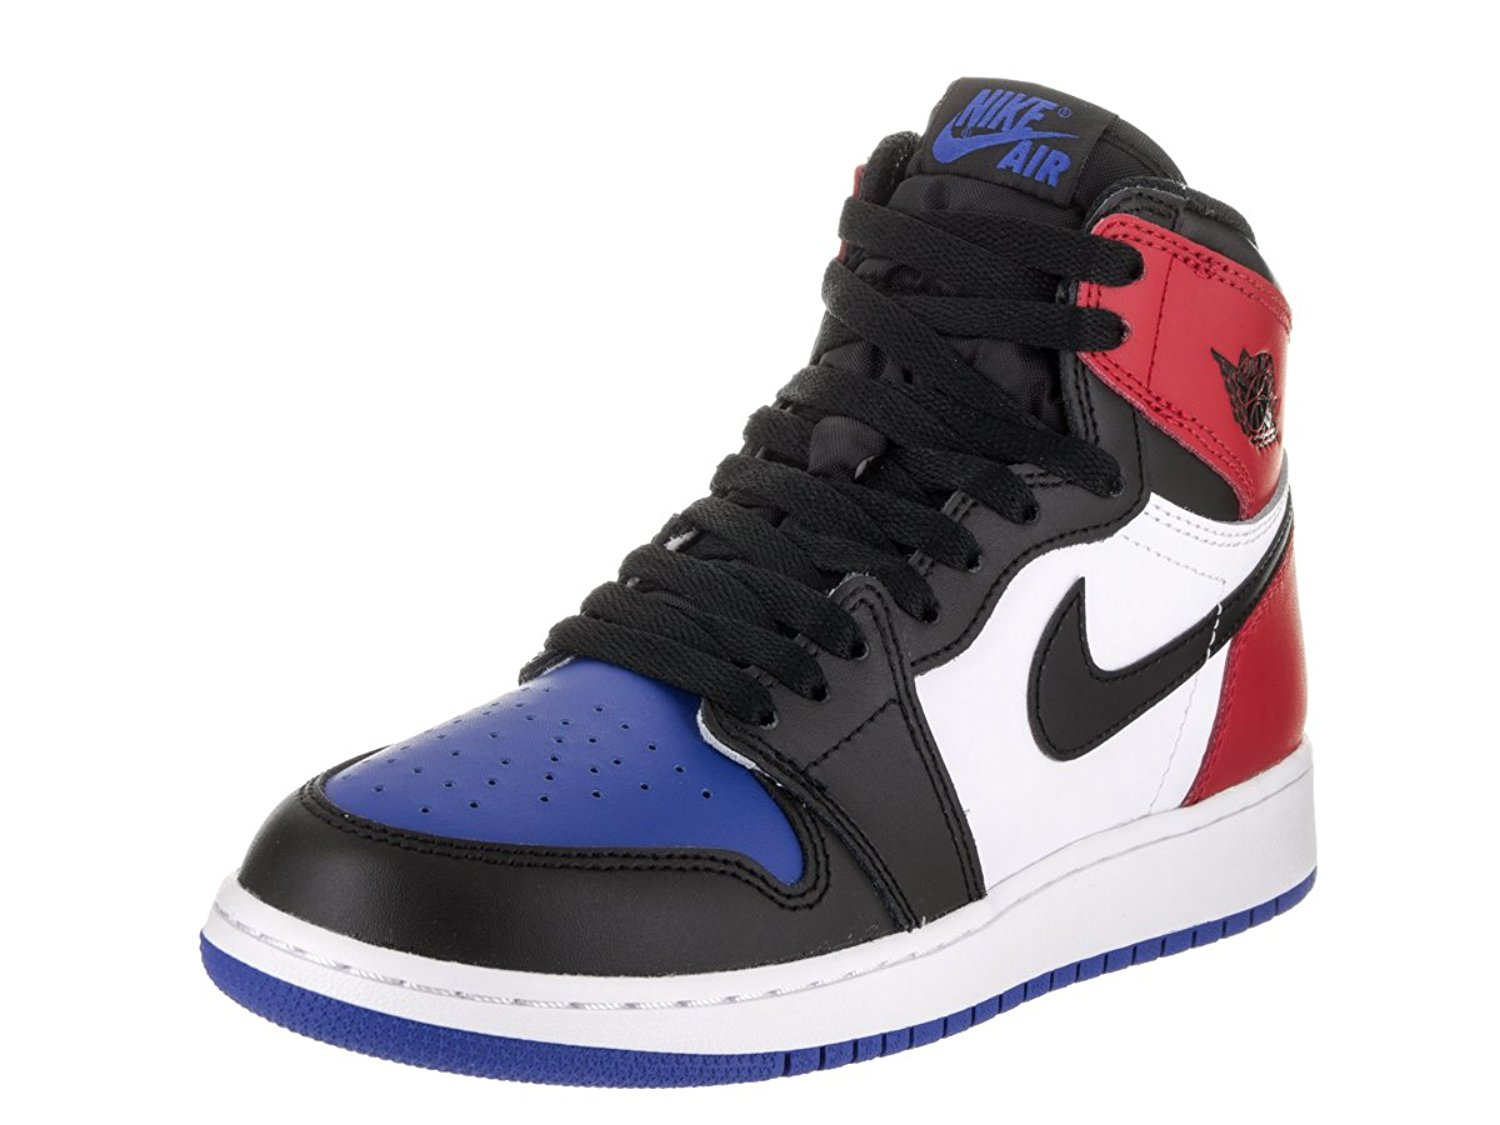 separation shoes e24e9 7fe92 Get Quotations · Nike Air Jordan 1 Retro High Top 3 Pick OG BG LTD Sneaker  Current Collection black